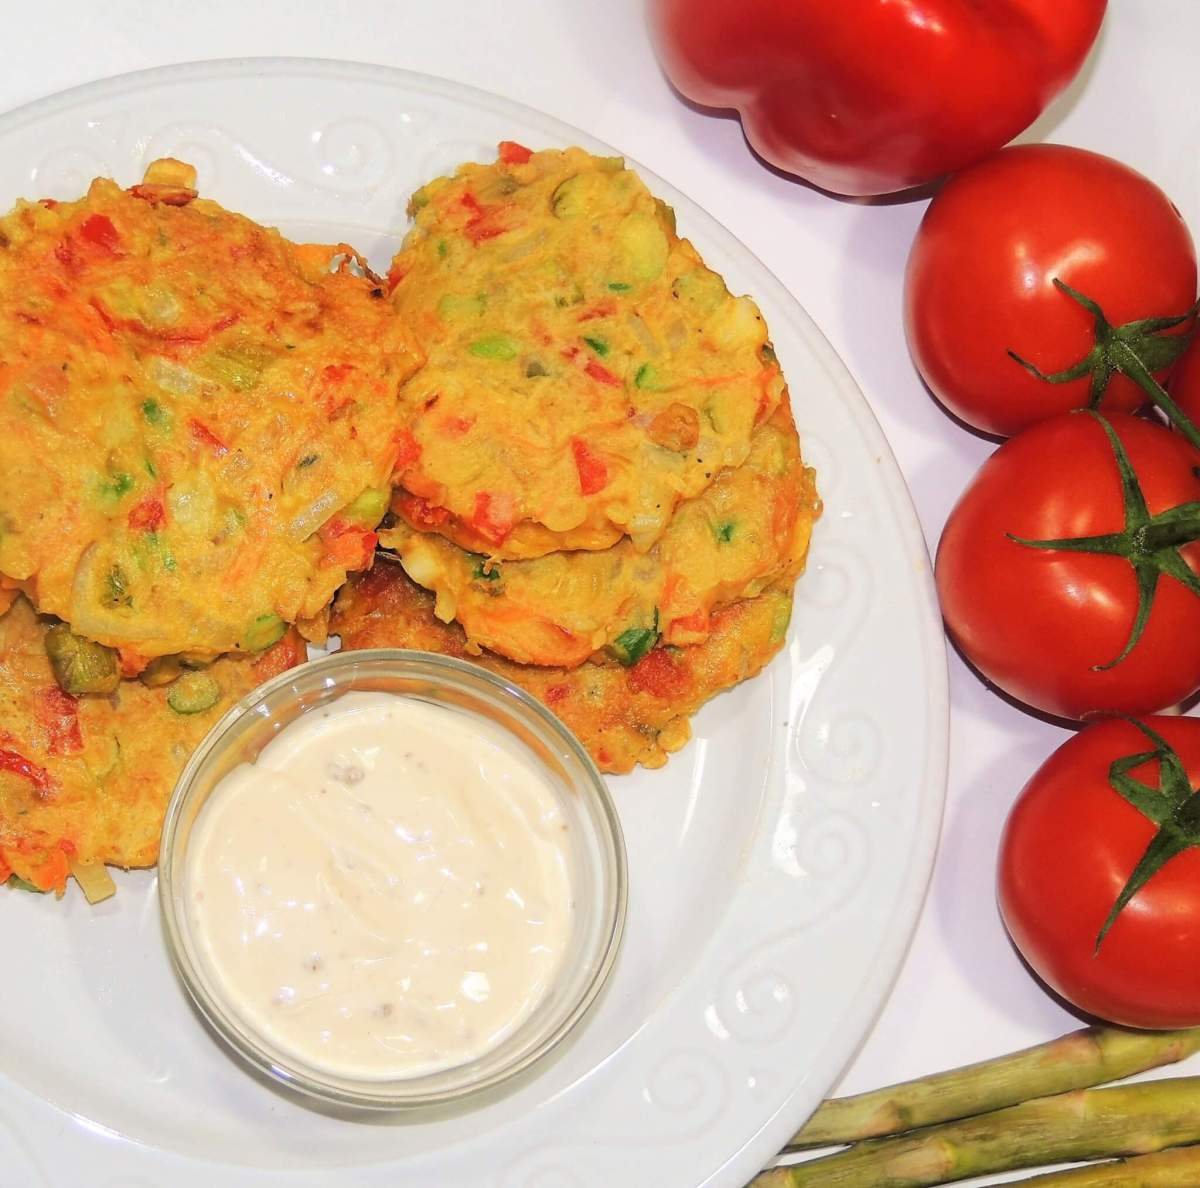 Vegetable Fritters made with Beans Flour: Recipe & Preparation